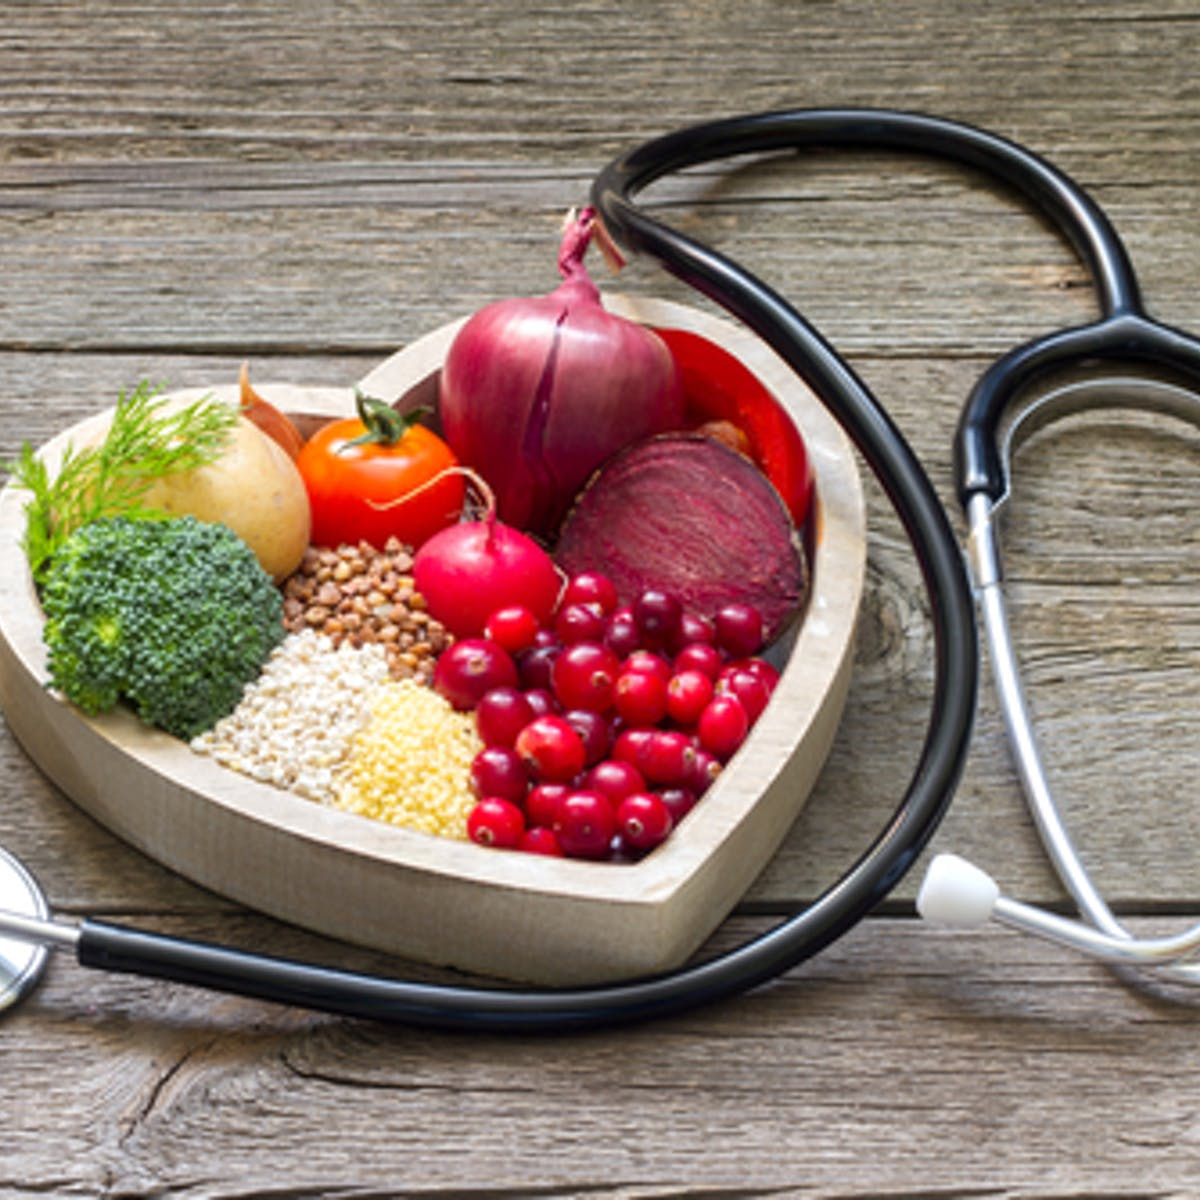 Food is medicine: How US policy is